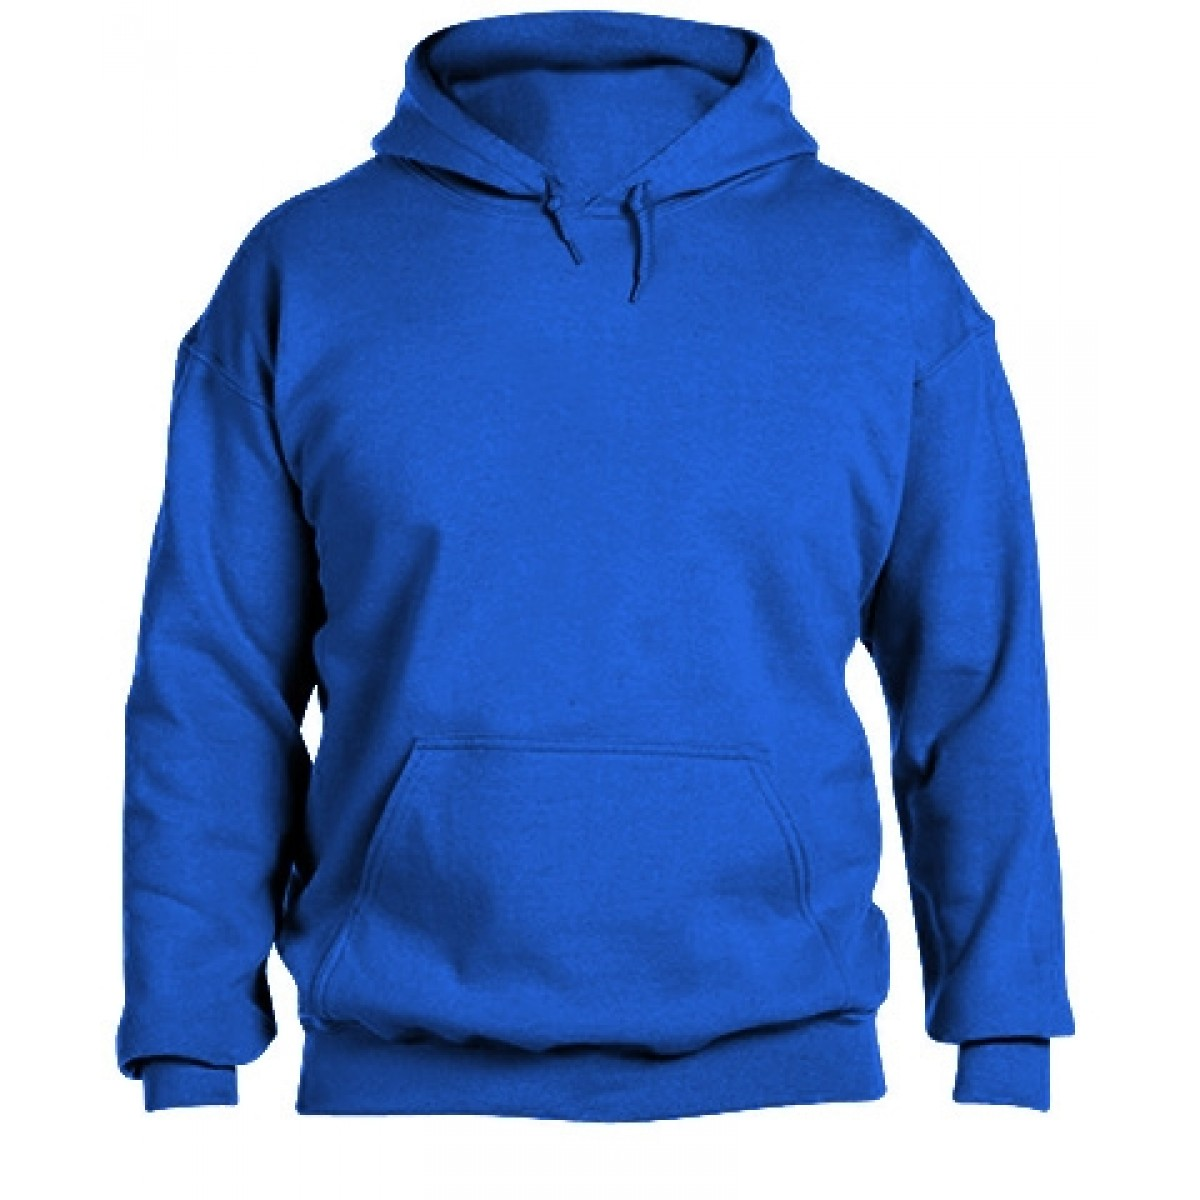 Solid Hooded Sweatshirt  50/50 Heavy Blend-Royal Blue-2XL